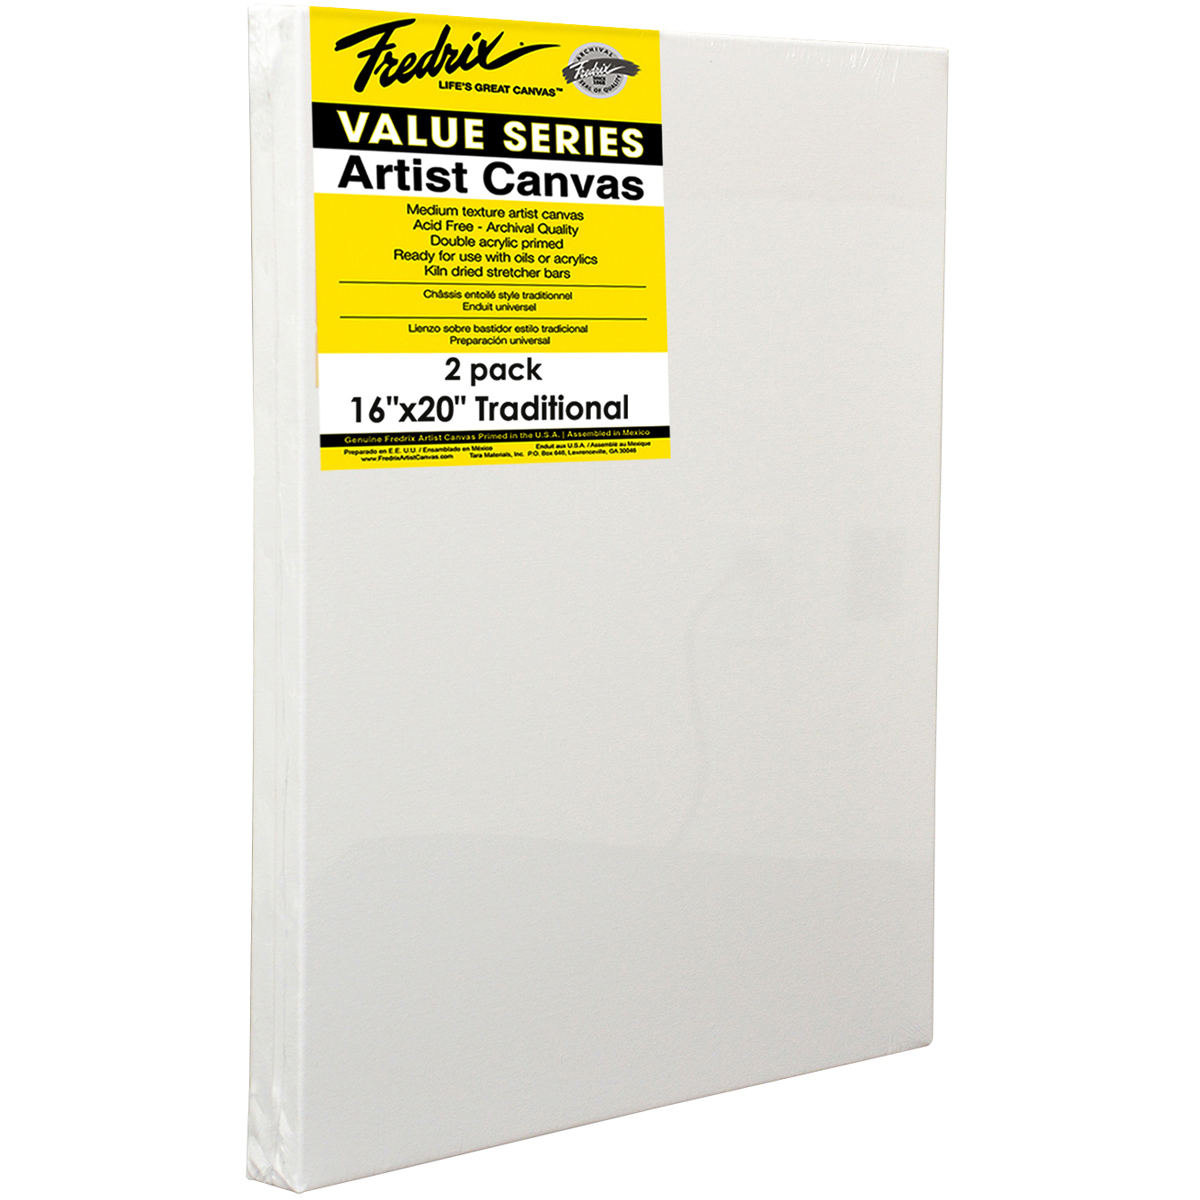 Tara Fredrix Value Stretch Canvas Twin Pack-16X20